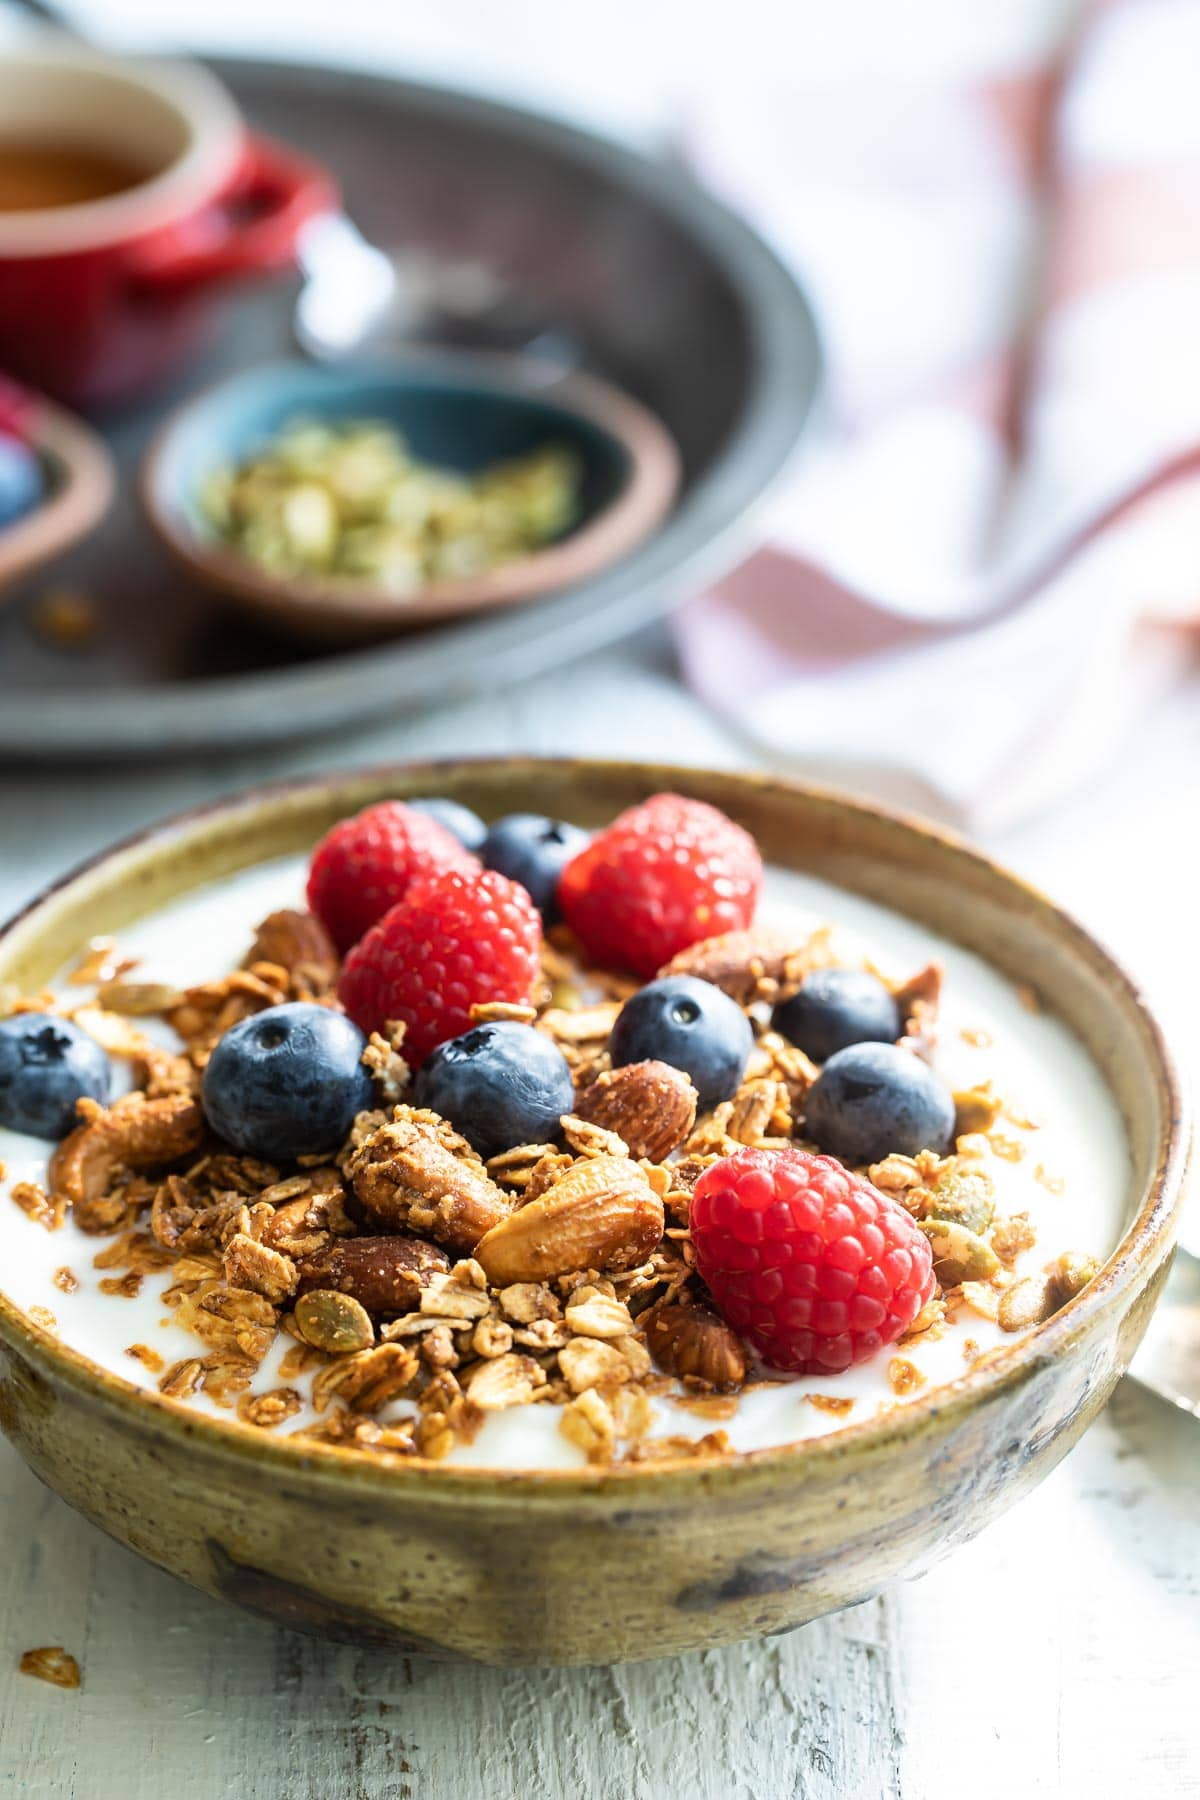 Granola and berries on top of a bowl of yogurt.